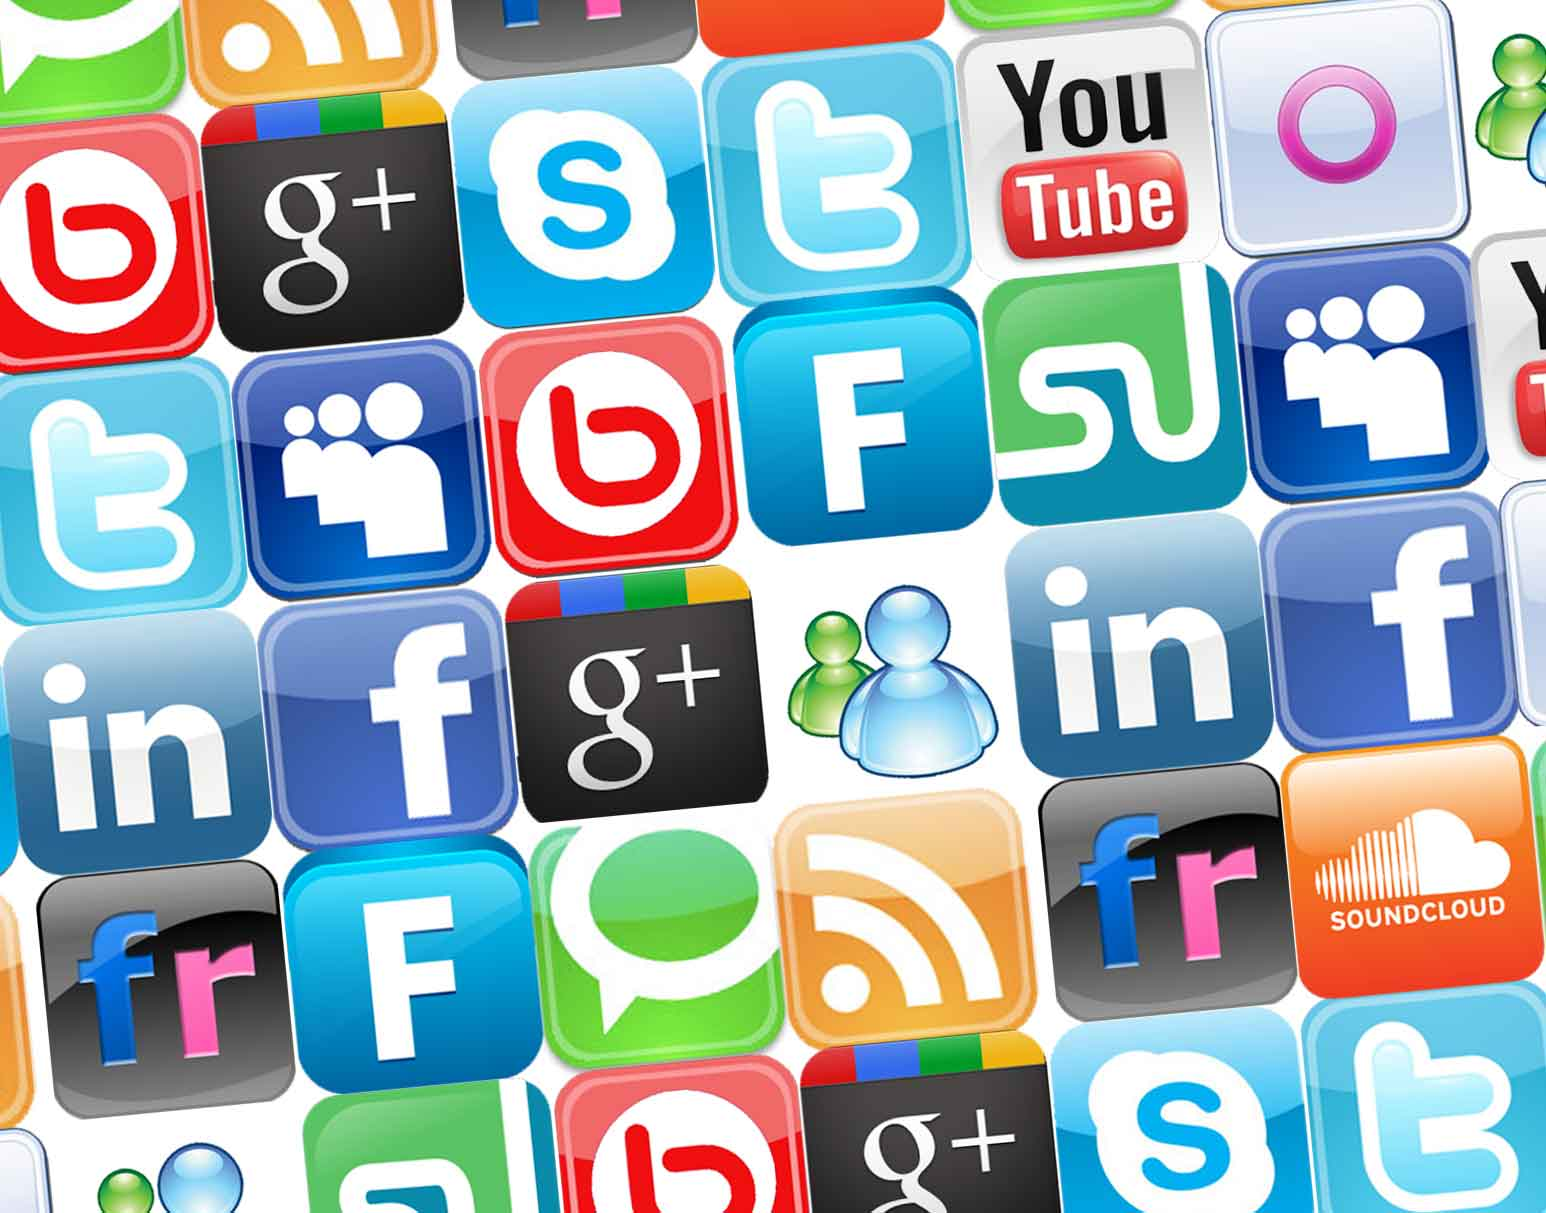 Give Your A Website Address Where You Can Post Across 20+ Social Networks At Once (Free Site)